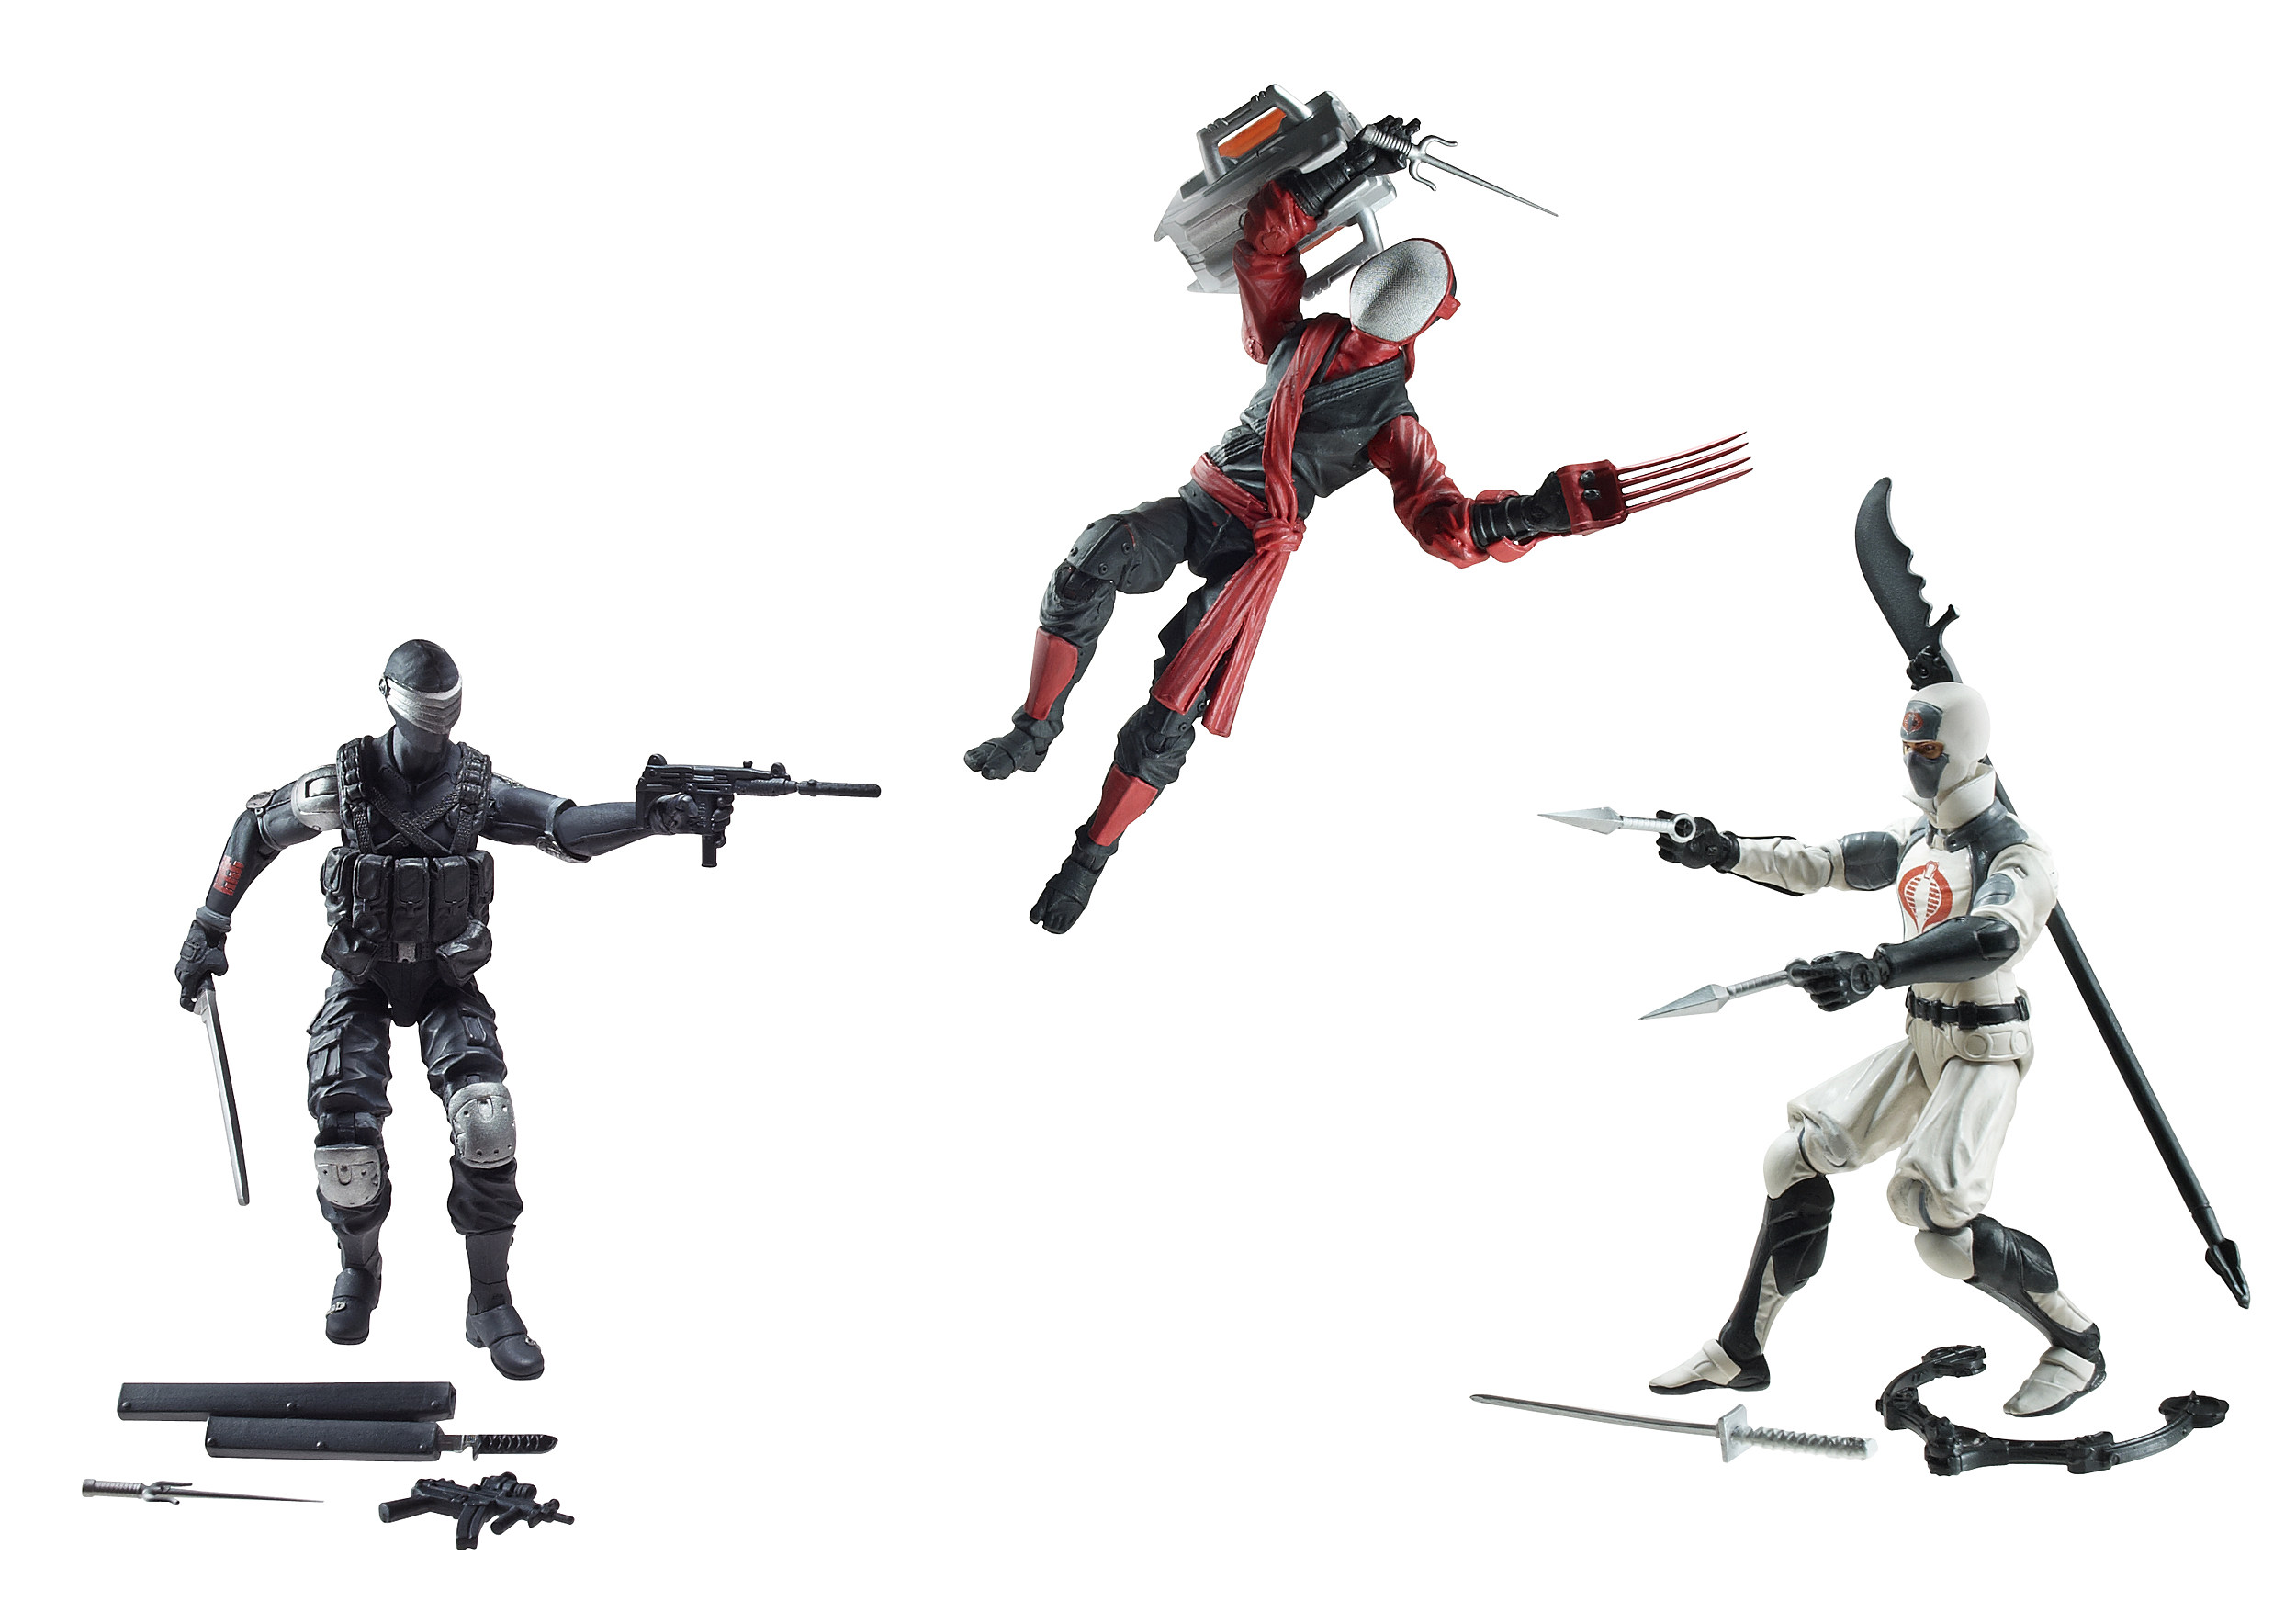 New G I Joe Retaliation Toy Images Roll Out Toy Fair